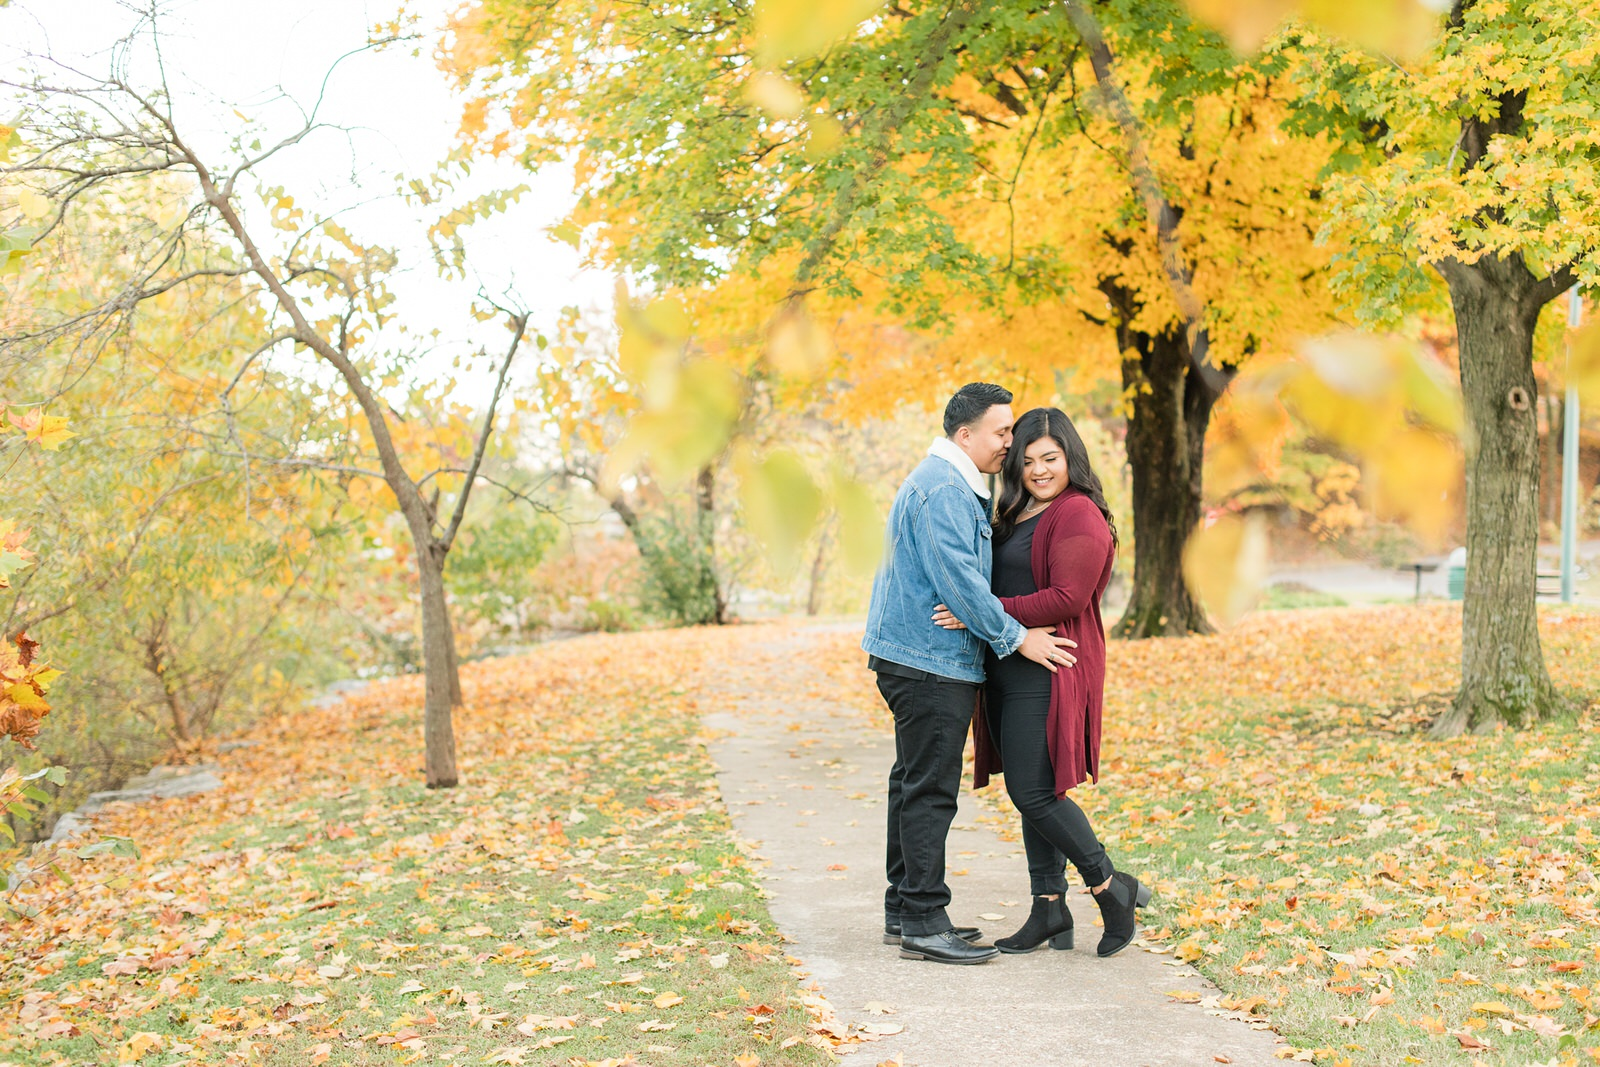 Estebon + Iliana Engagement Photos in Siloam Springs, AR